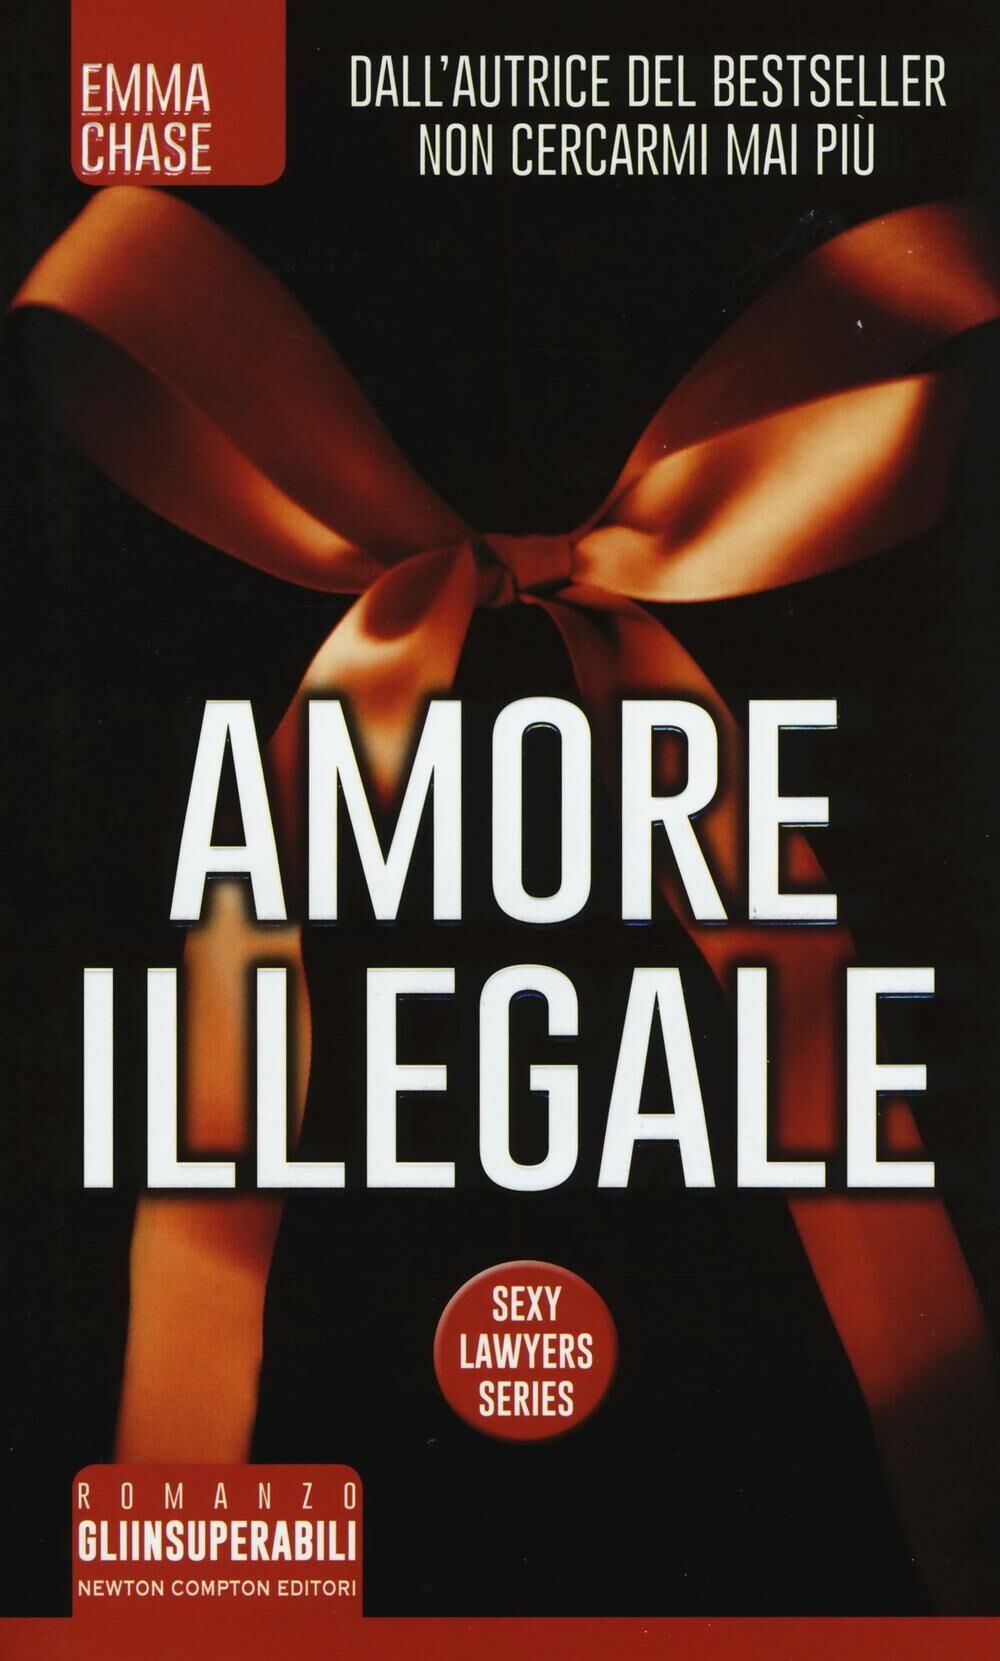 Amore illegale. Sexy lawyers series